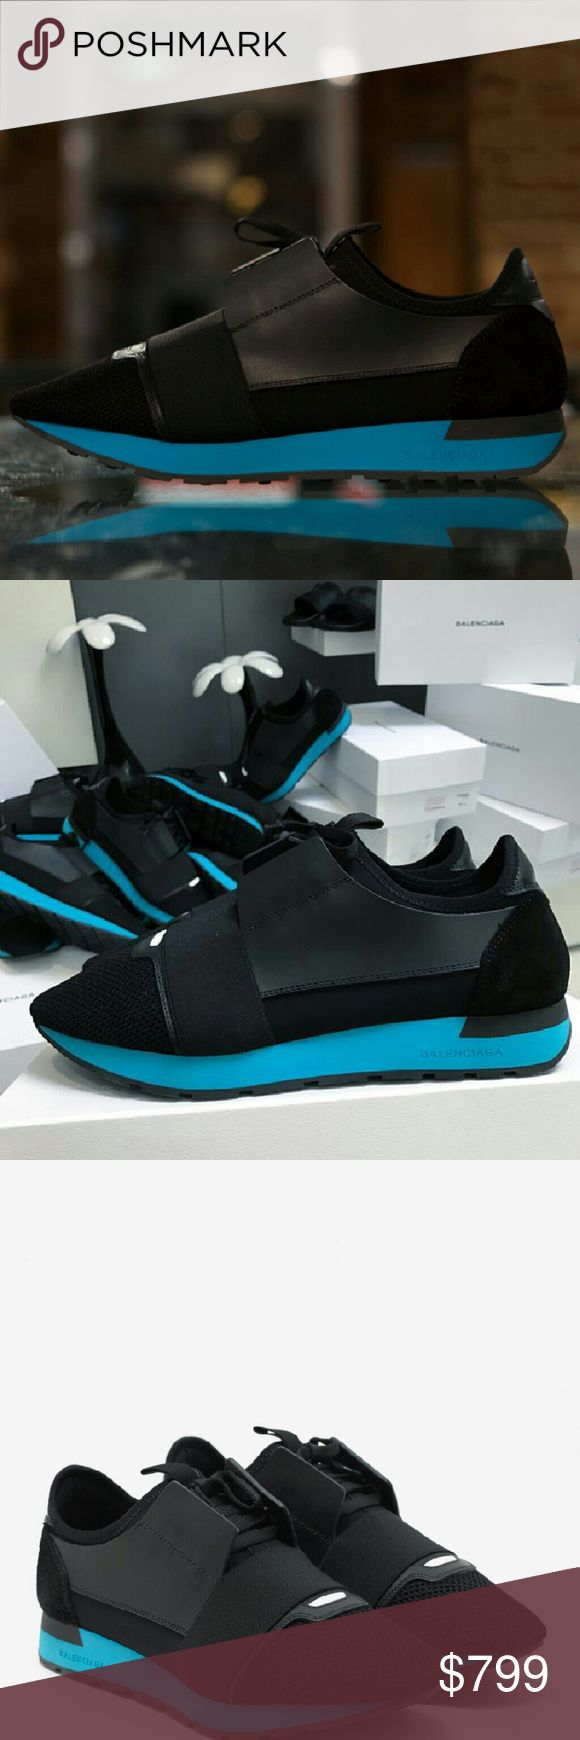 BalenciAga Men Black and Turquoise Sneakers New  Authentic I don't discuss prices online, send me an offer or text 8177790625. Balenciaga Shoes Sneakers